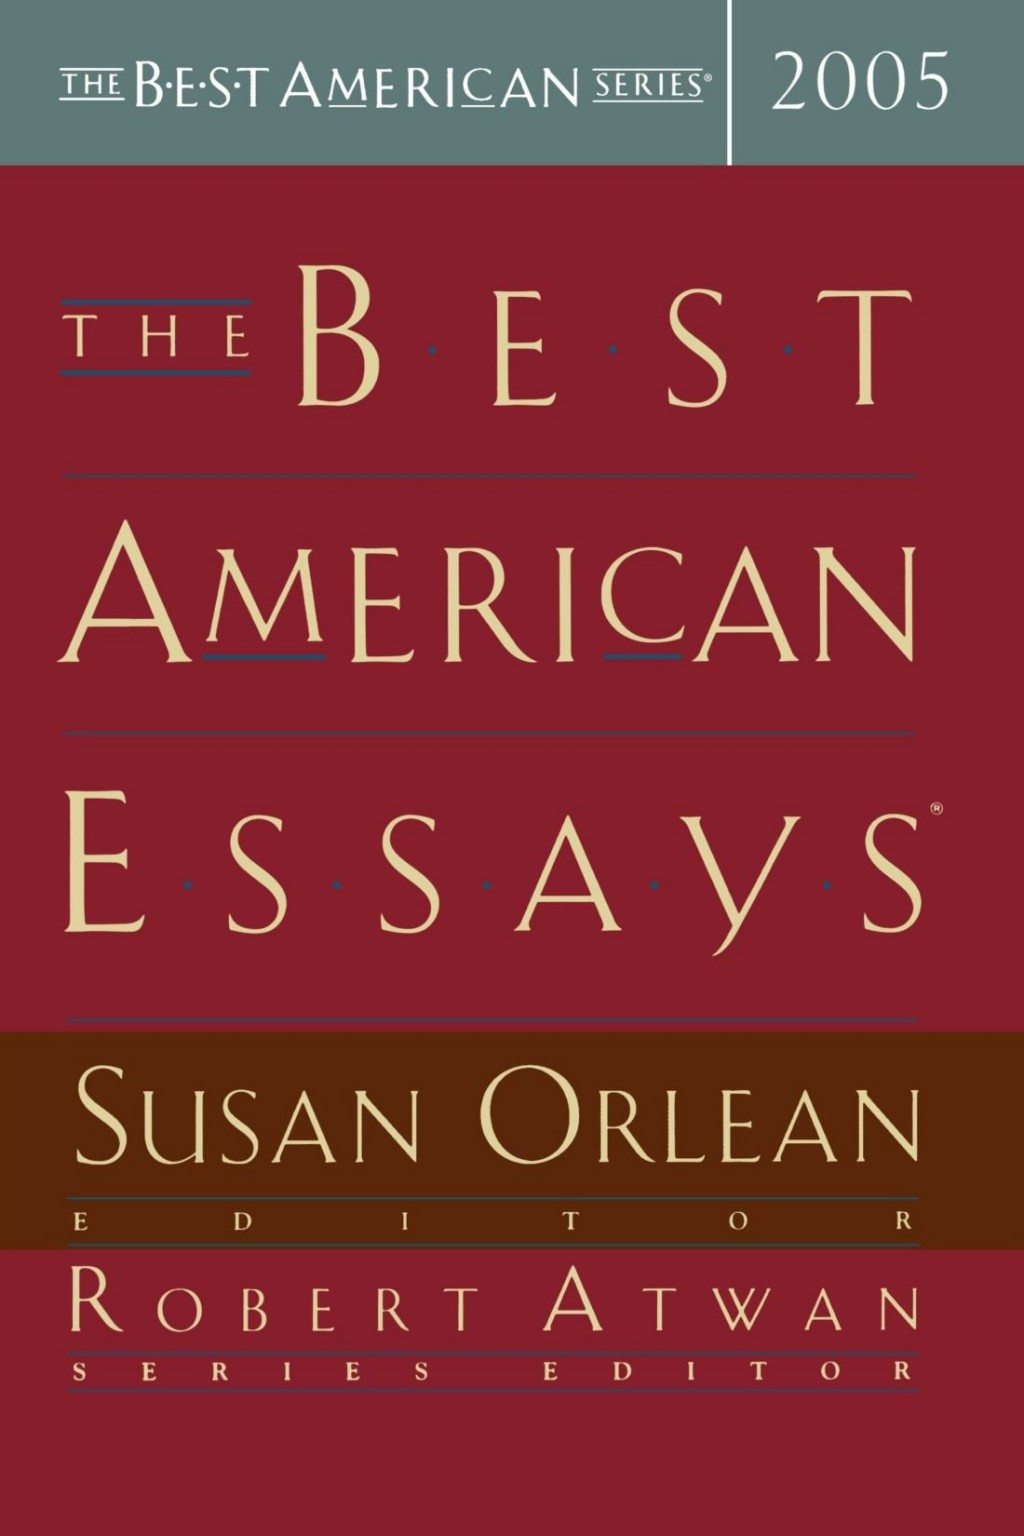 010 Essay Example Best American Essays Striking 2017 Pdf Submissions 2019 Of The Century Table Contents Large